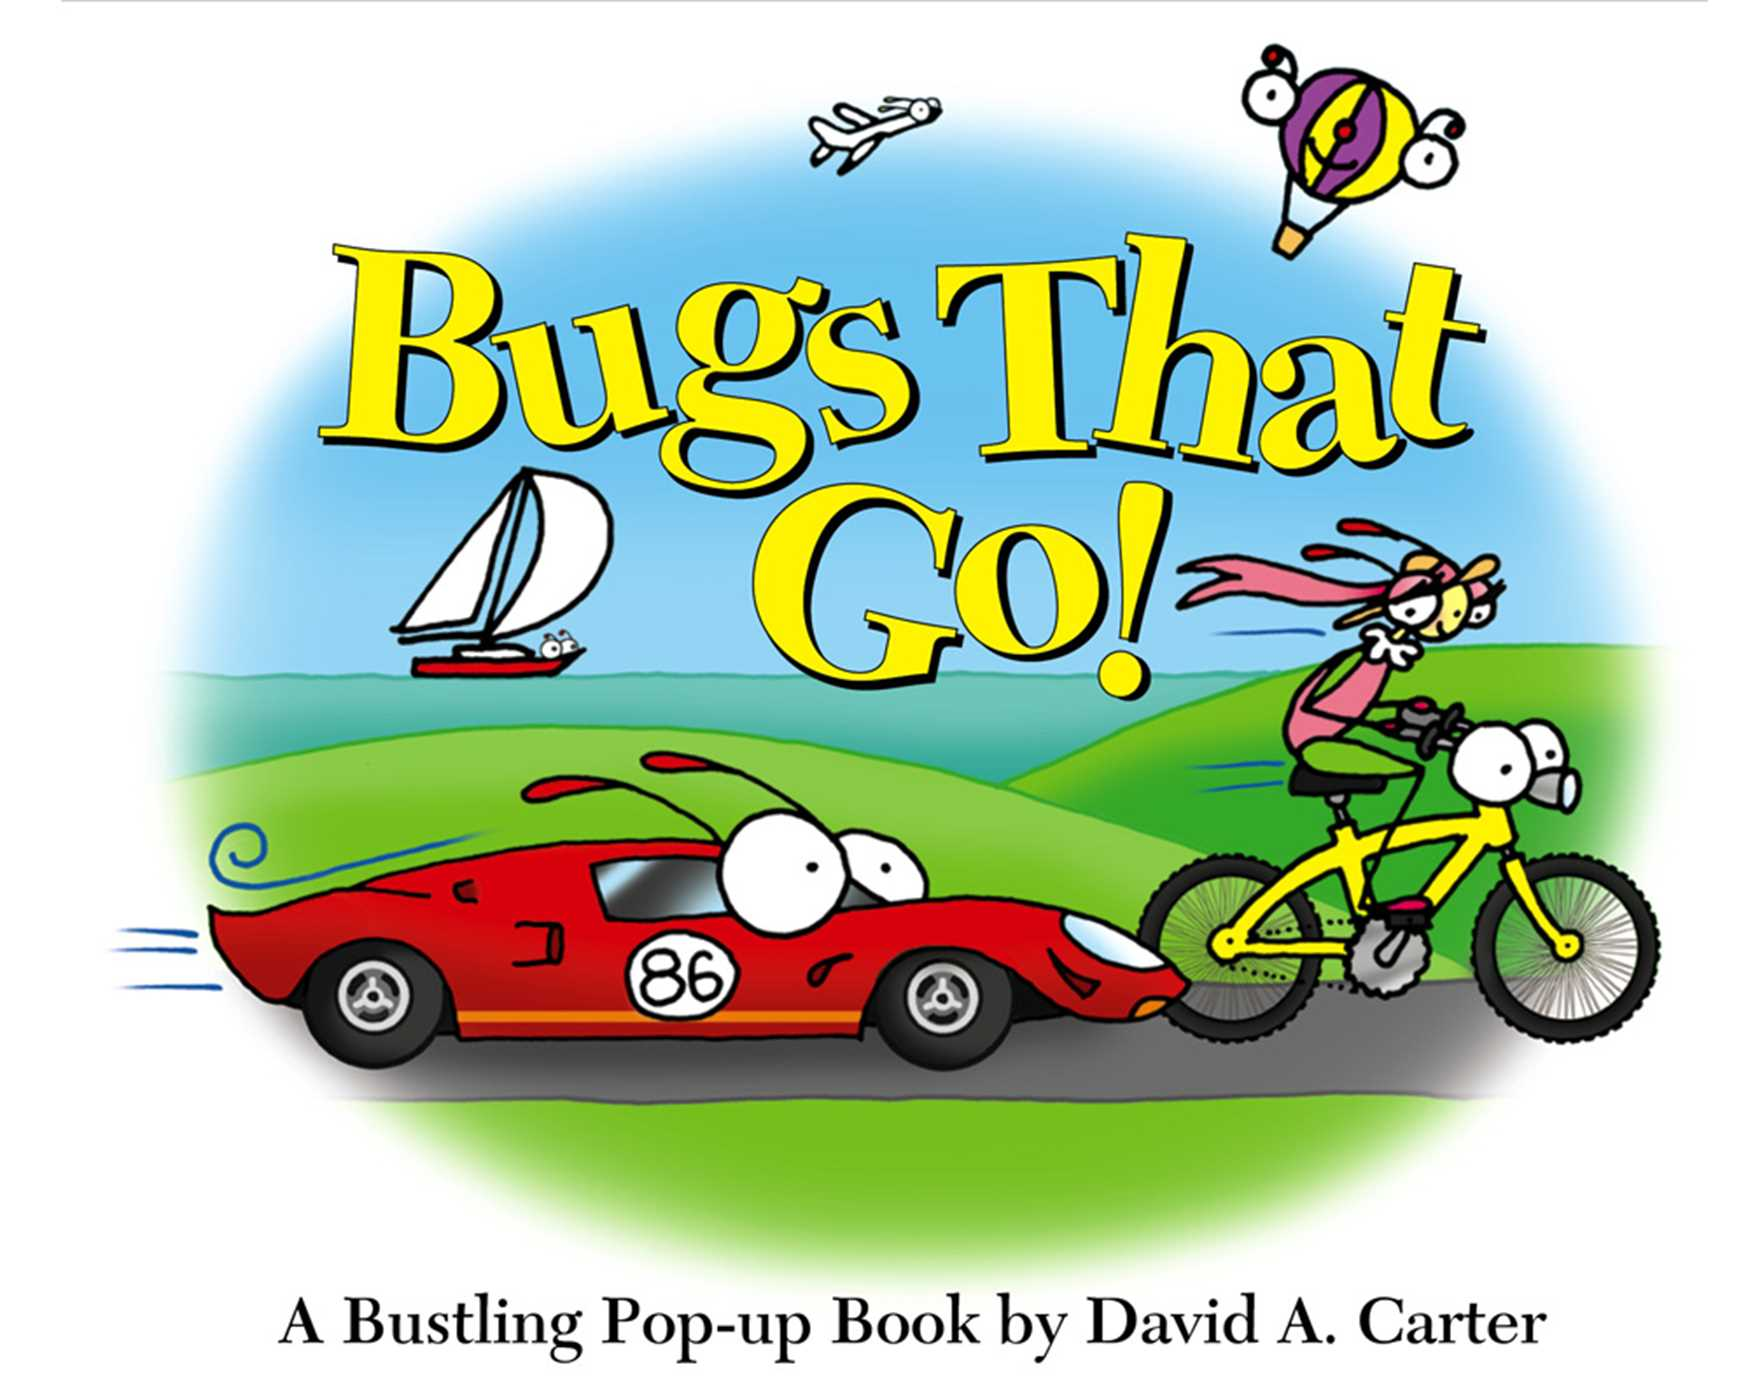 Bugs that go enhanced ebook edition 9781442451308 hr